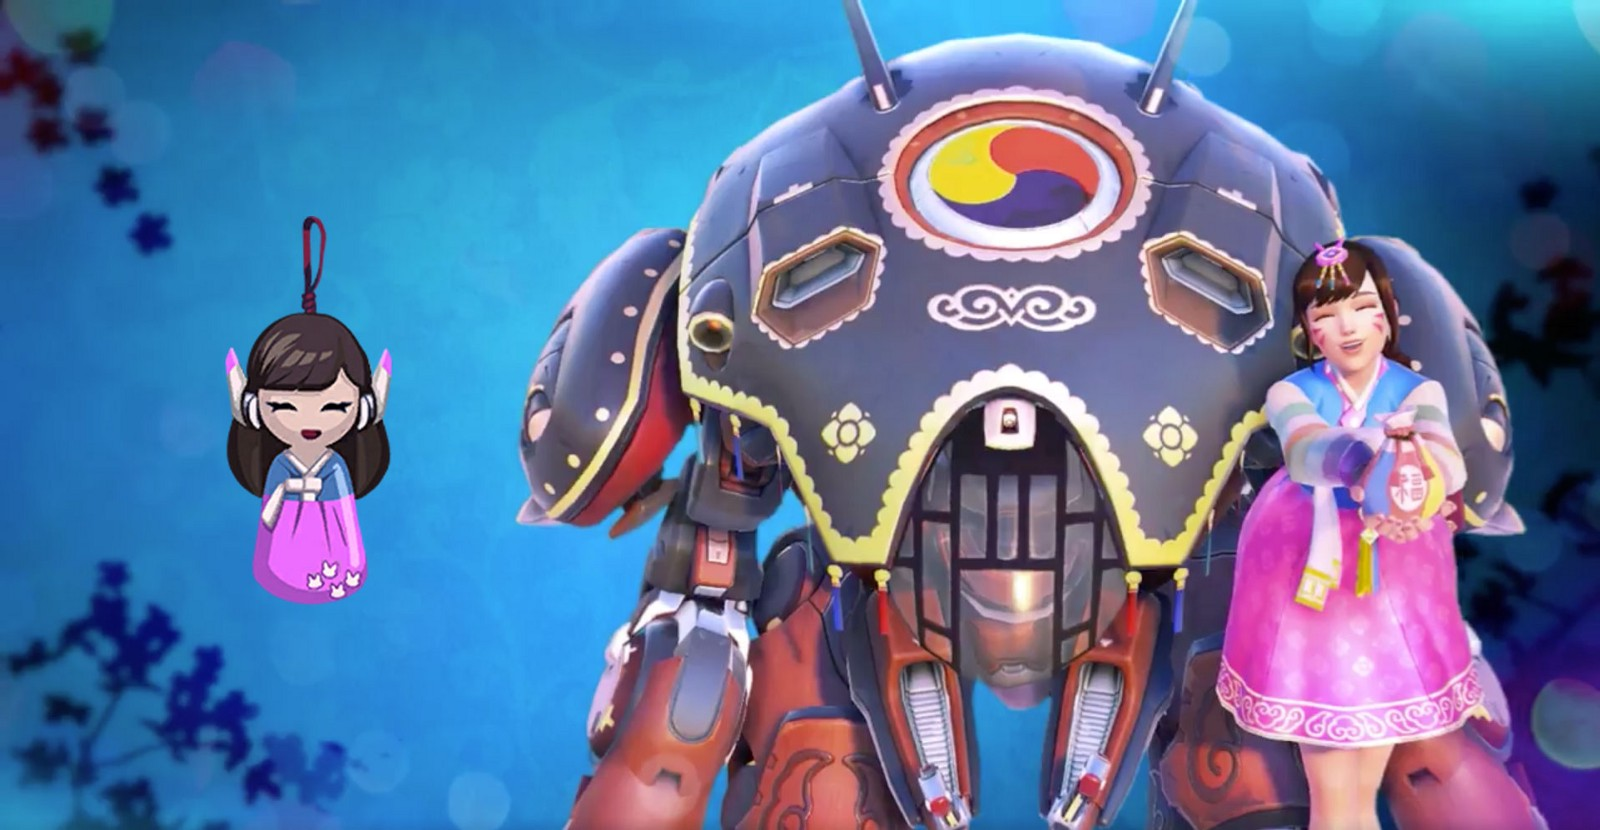 overwatch may have already hinted future seasonal skins